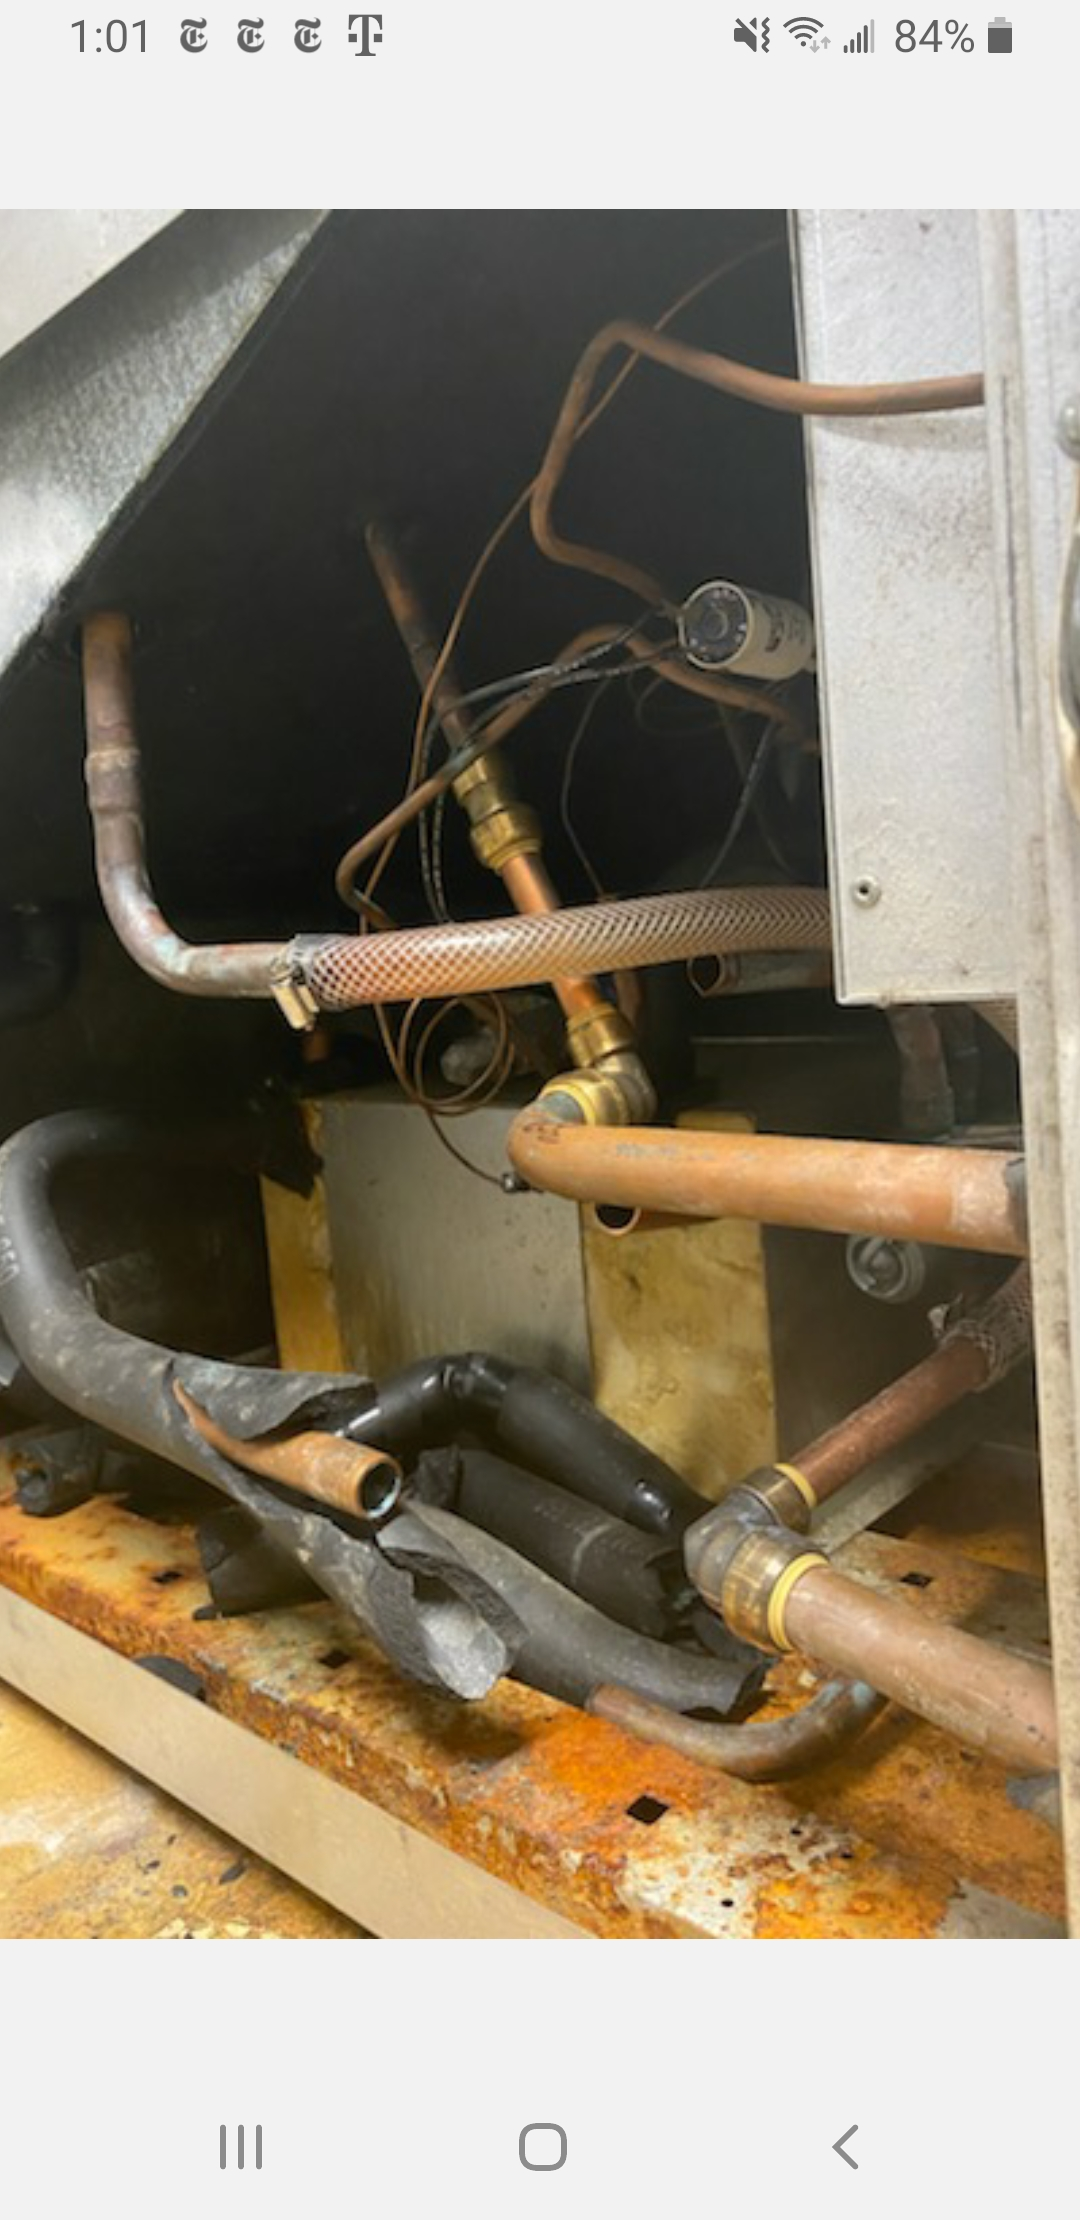 Customers thinking out of the box making emergency hydronic geothermal repairs.